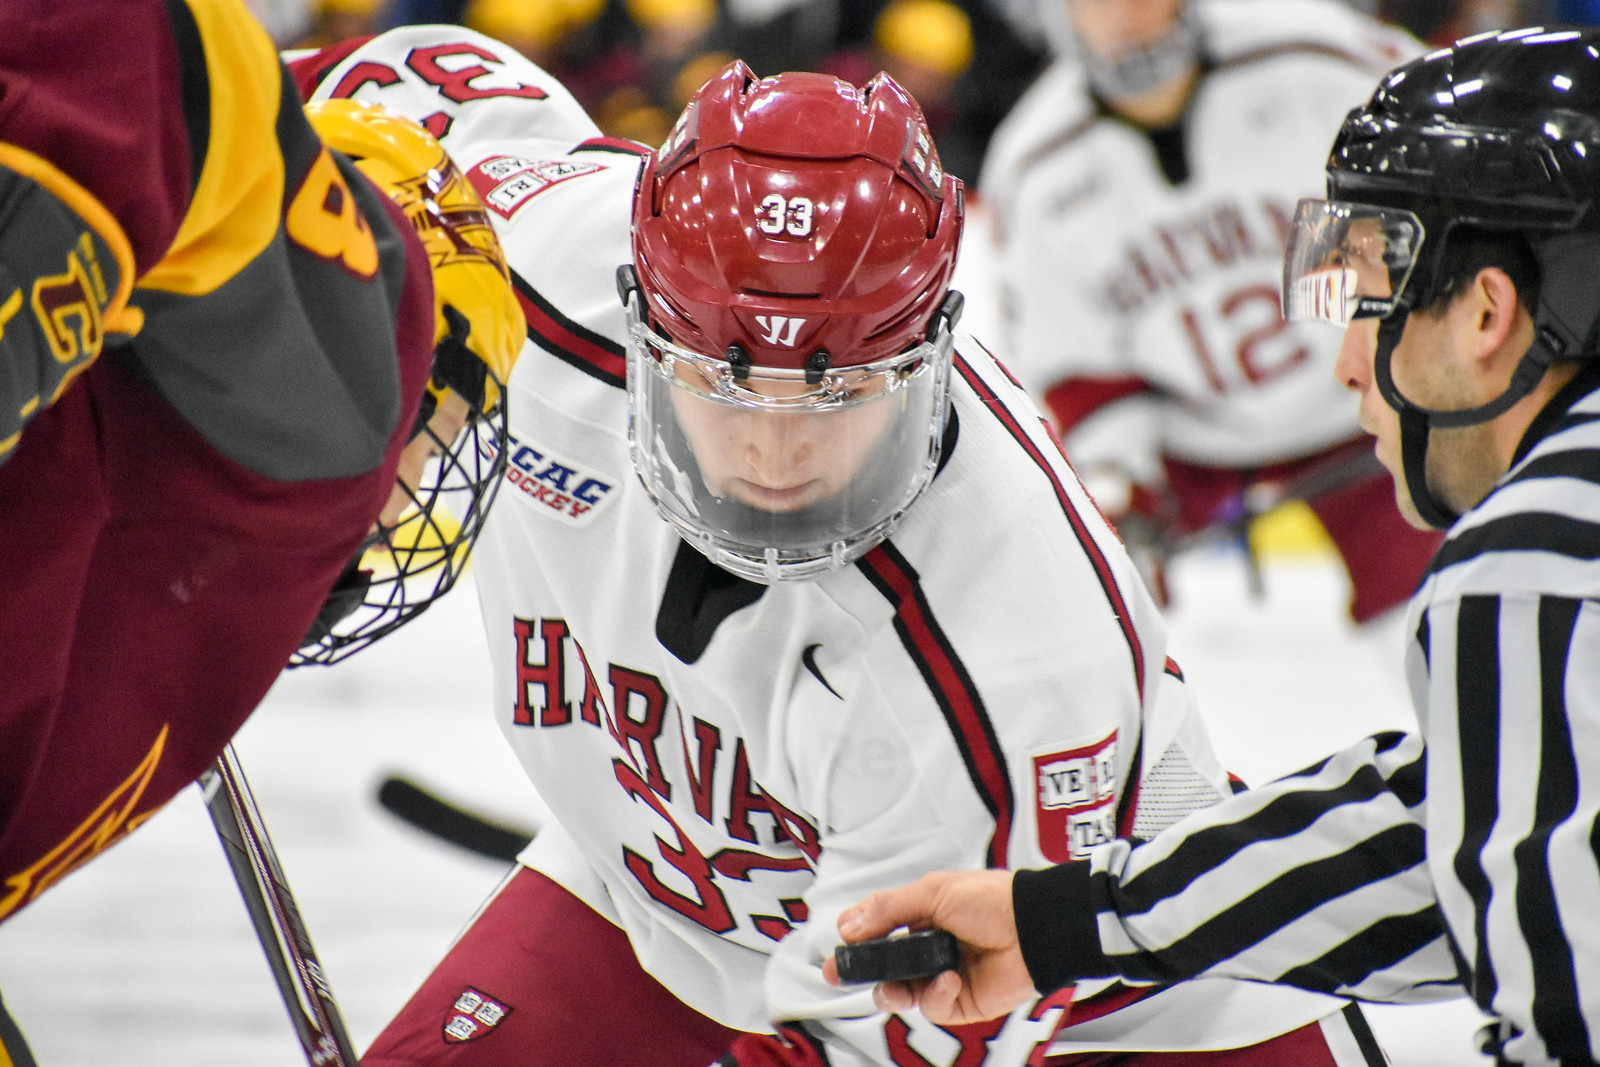 The Crimson walked away from the weekend with just two points despite carrying play for much of the back-to-back.